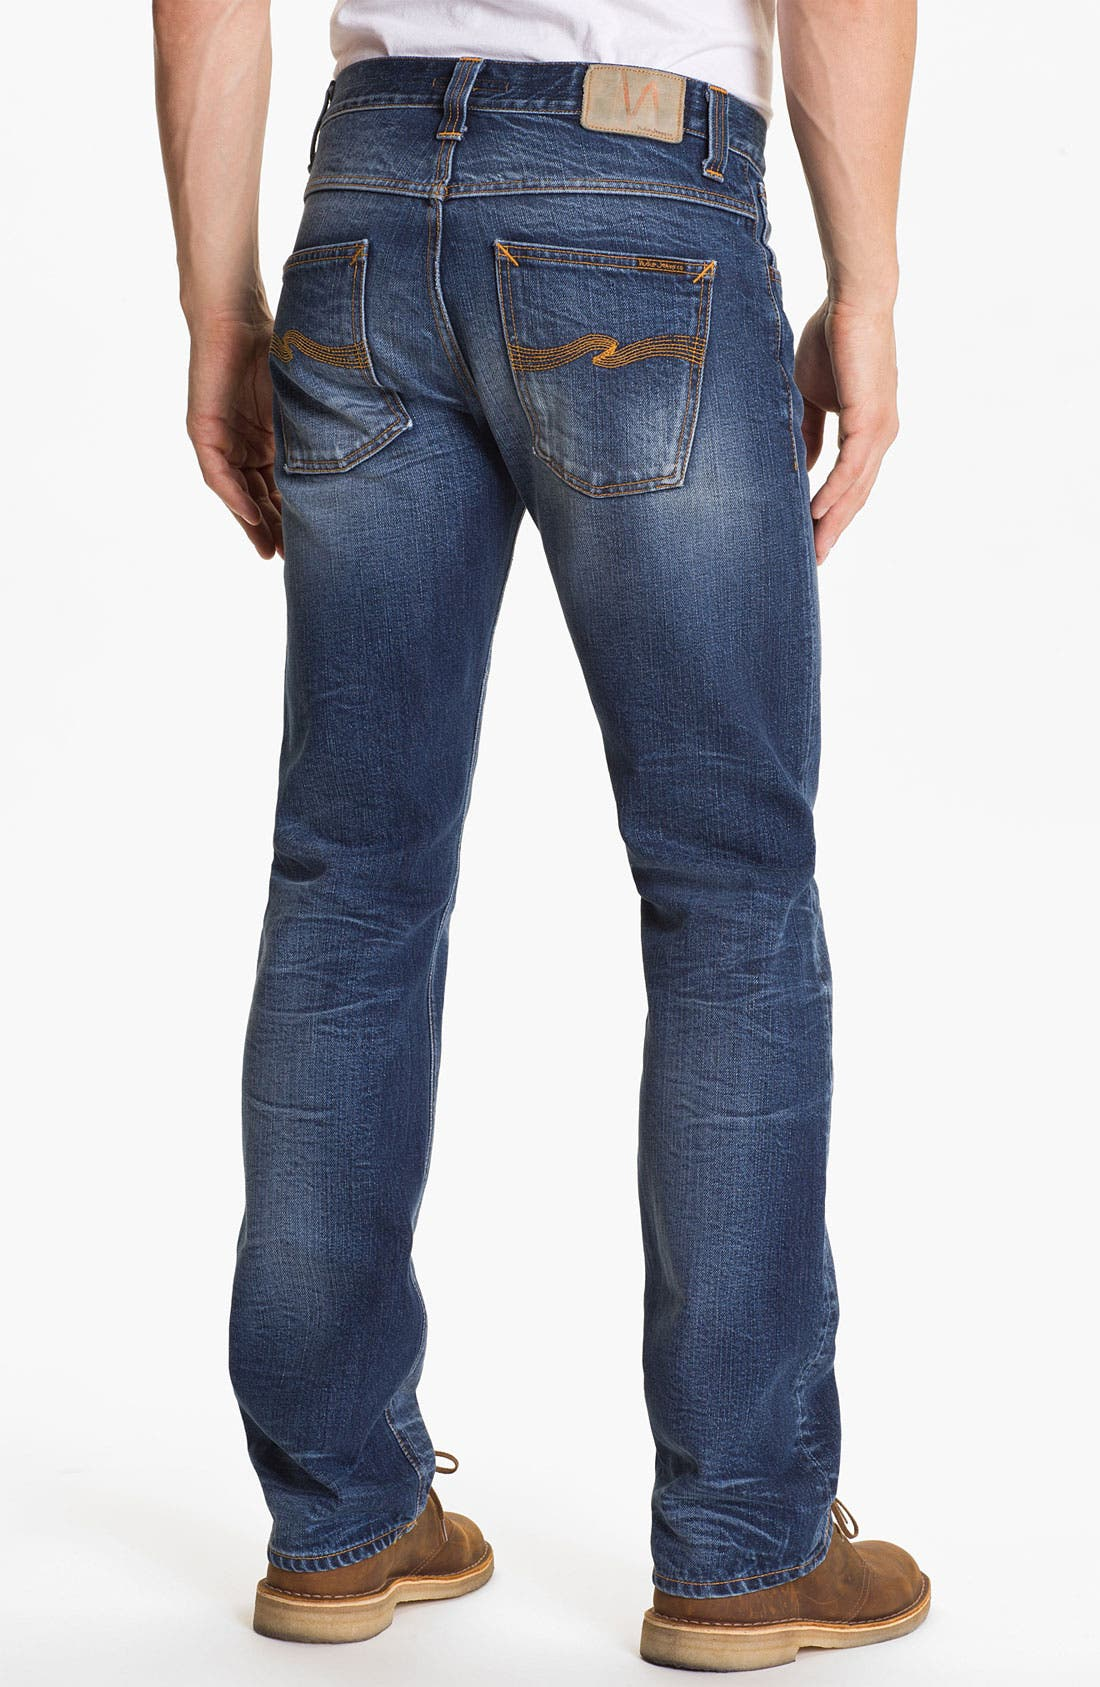 Alternate Image 1 Selected - Nudie 'Average Joe' Straight Leg Jeans (Organic Fine Contrast)